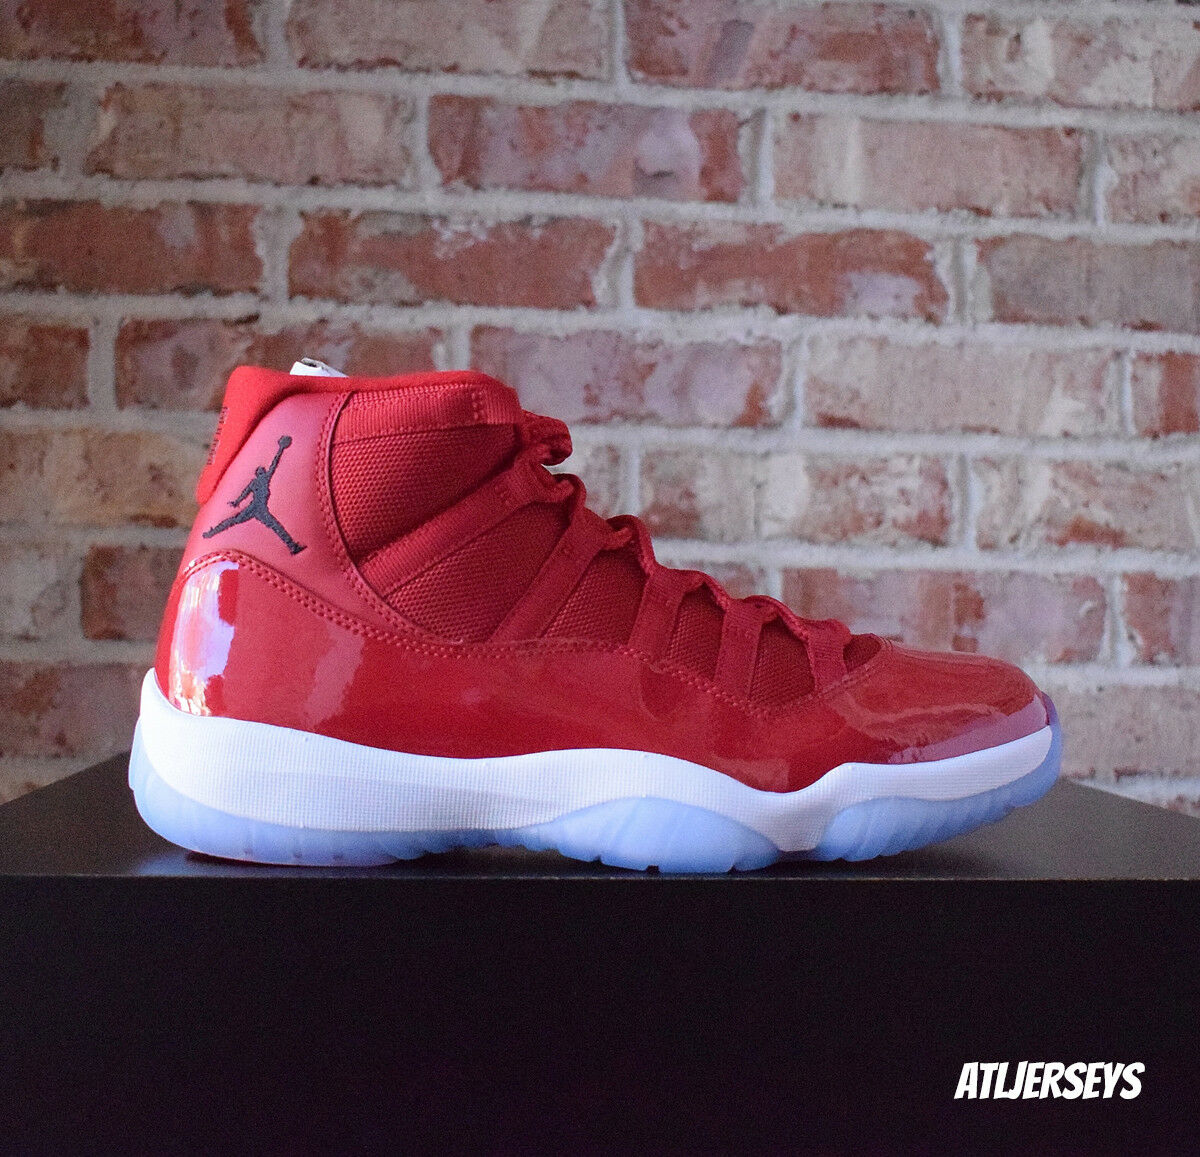 f653491be295 2017 Nike Air Jordan 11 XI Retro Win Like 96 Gym Red 378037-623 Size 4Y-13  1 of 12Only 0 available ...